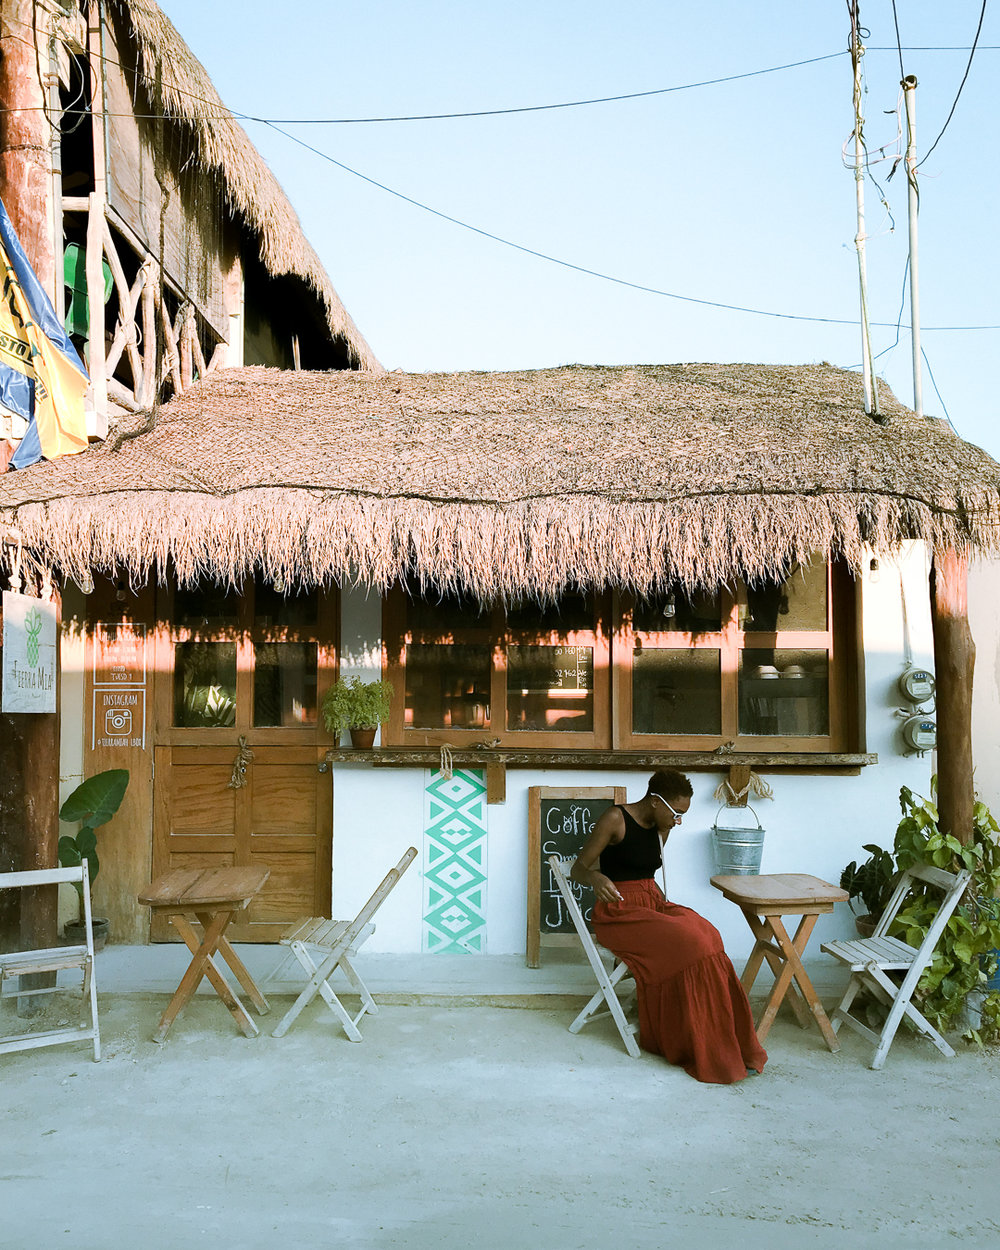 travelingfro holbox IG friends cafe hut-1.jpg